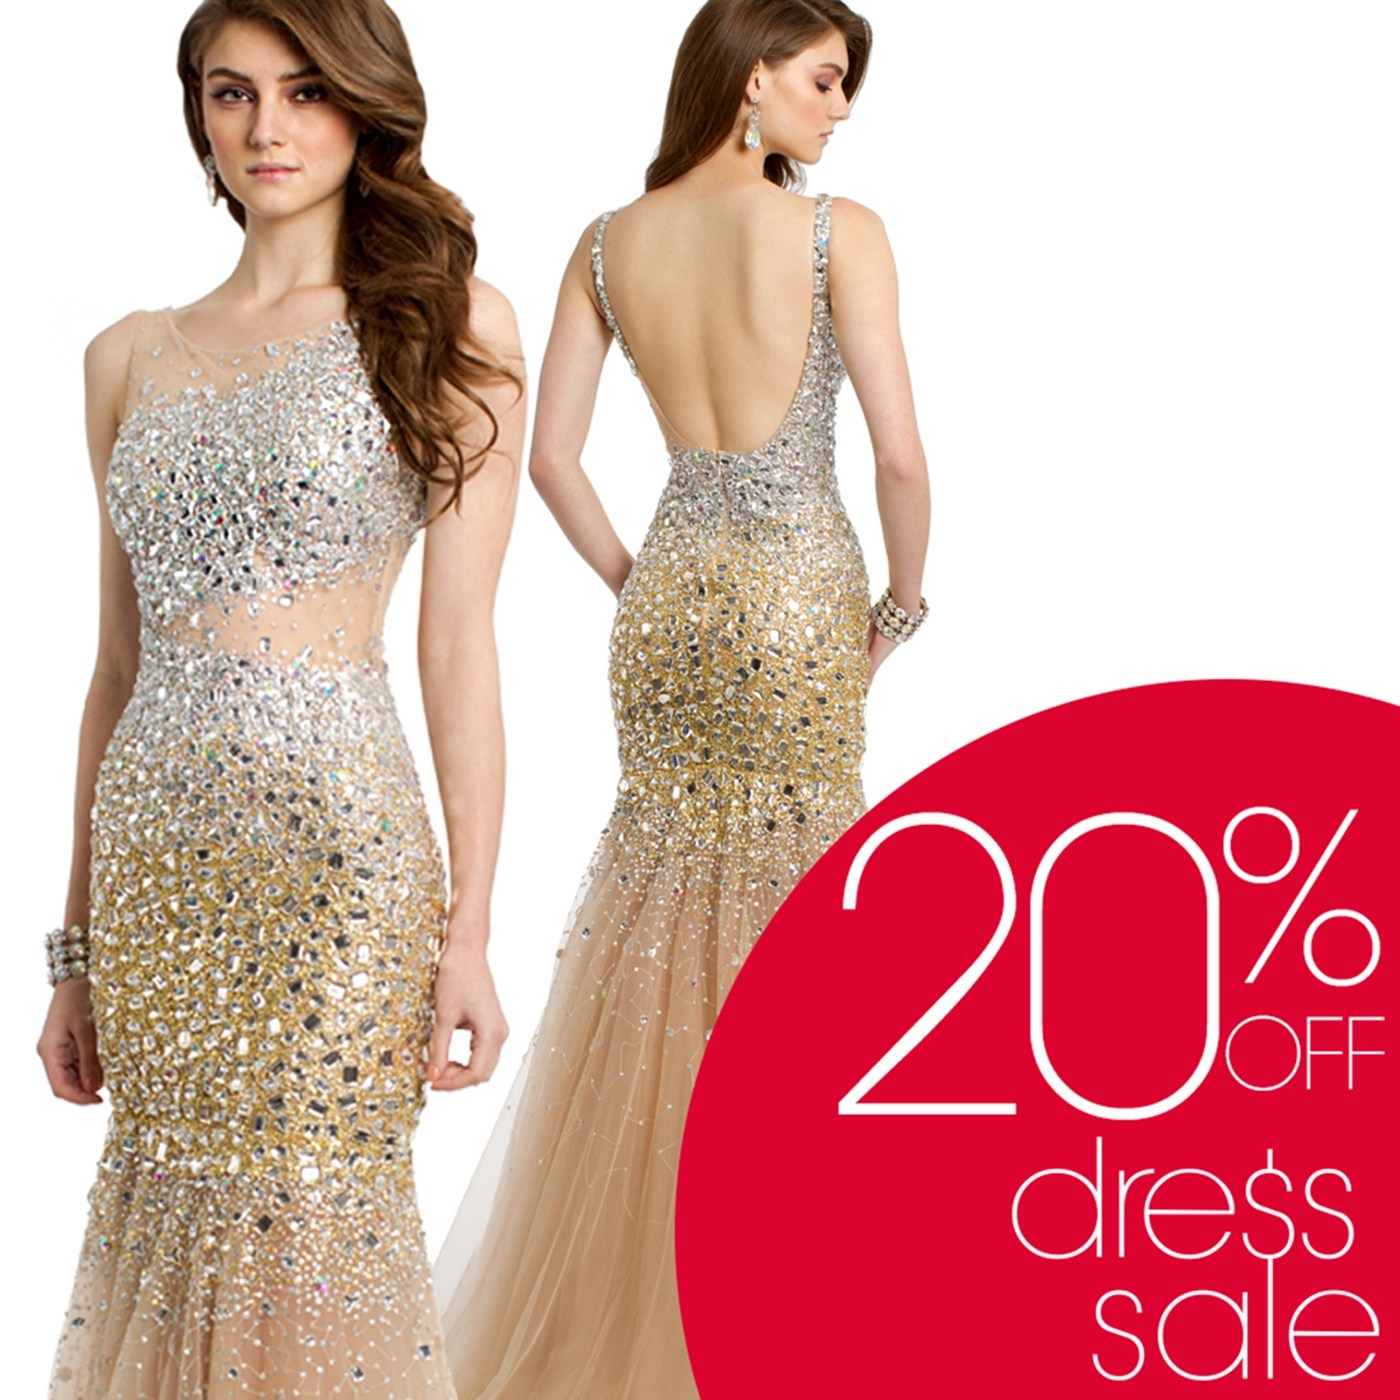 Fullsize Of Dresses On Sale